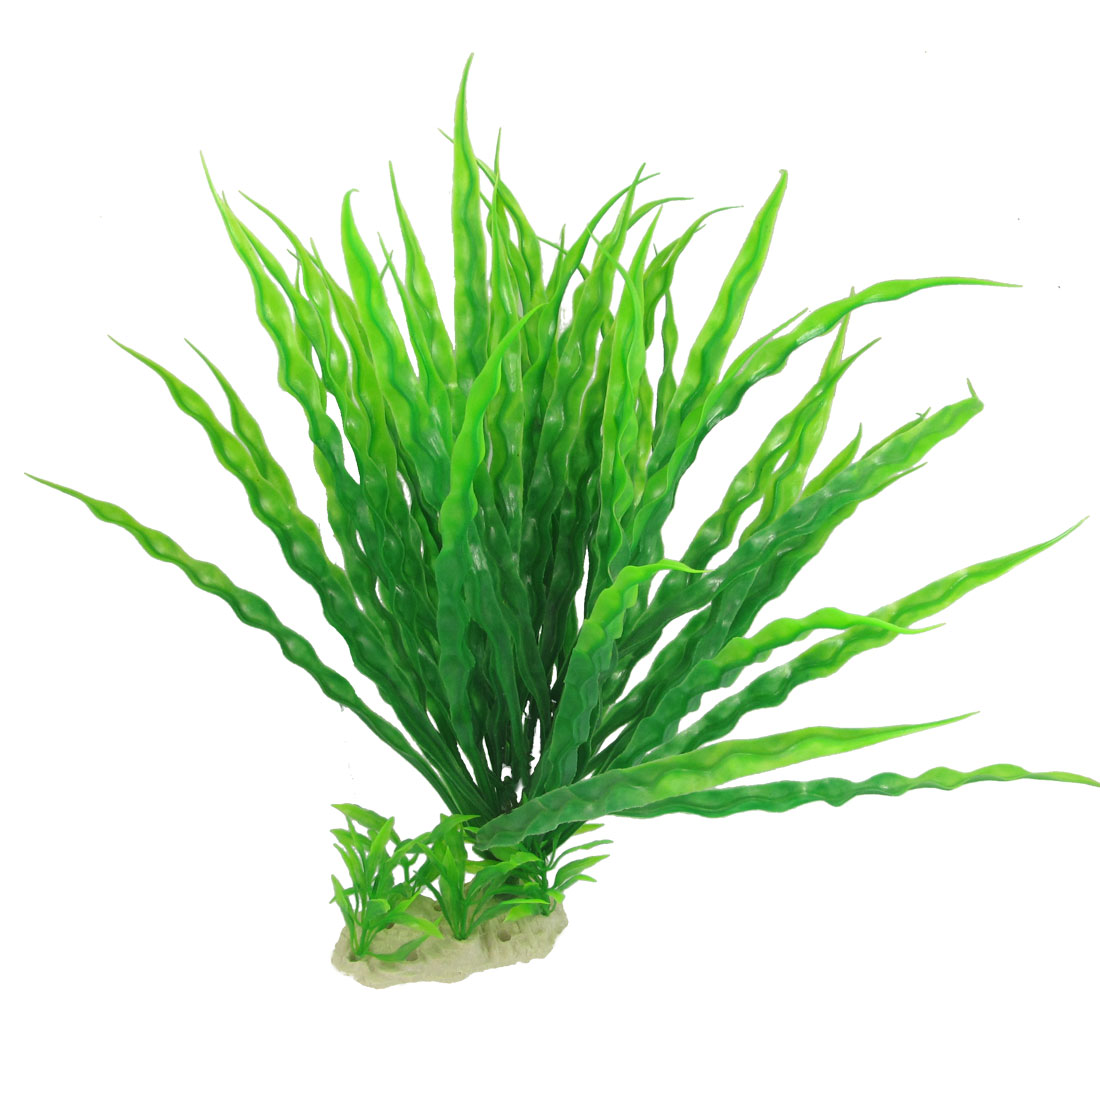 35cm Height Green Aquarium Fish Tank Plastic Waterweed Grass